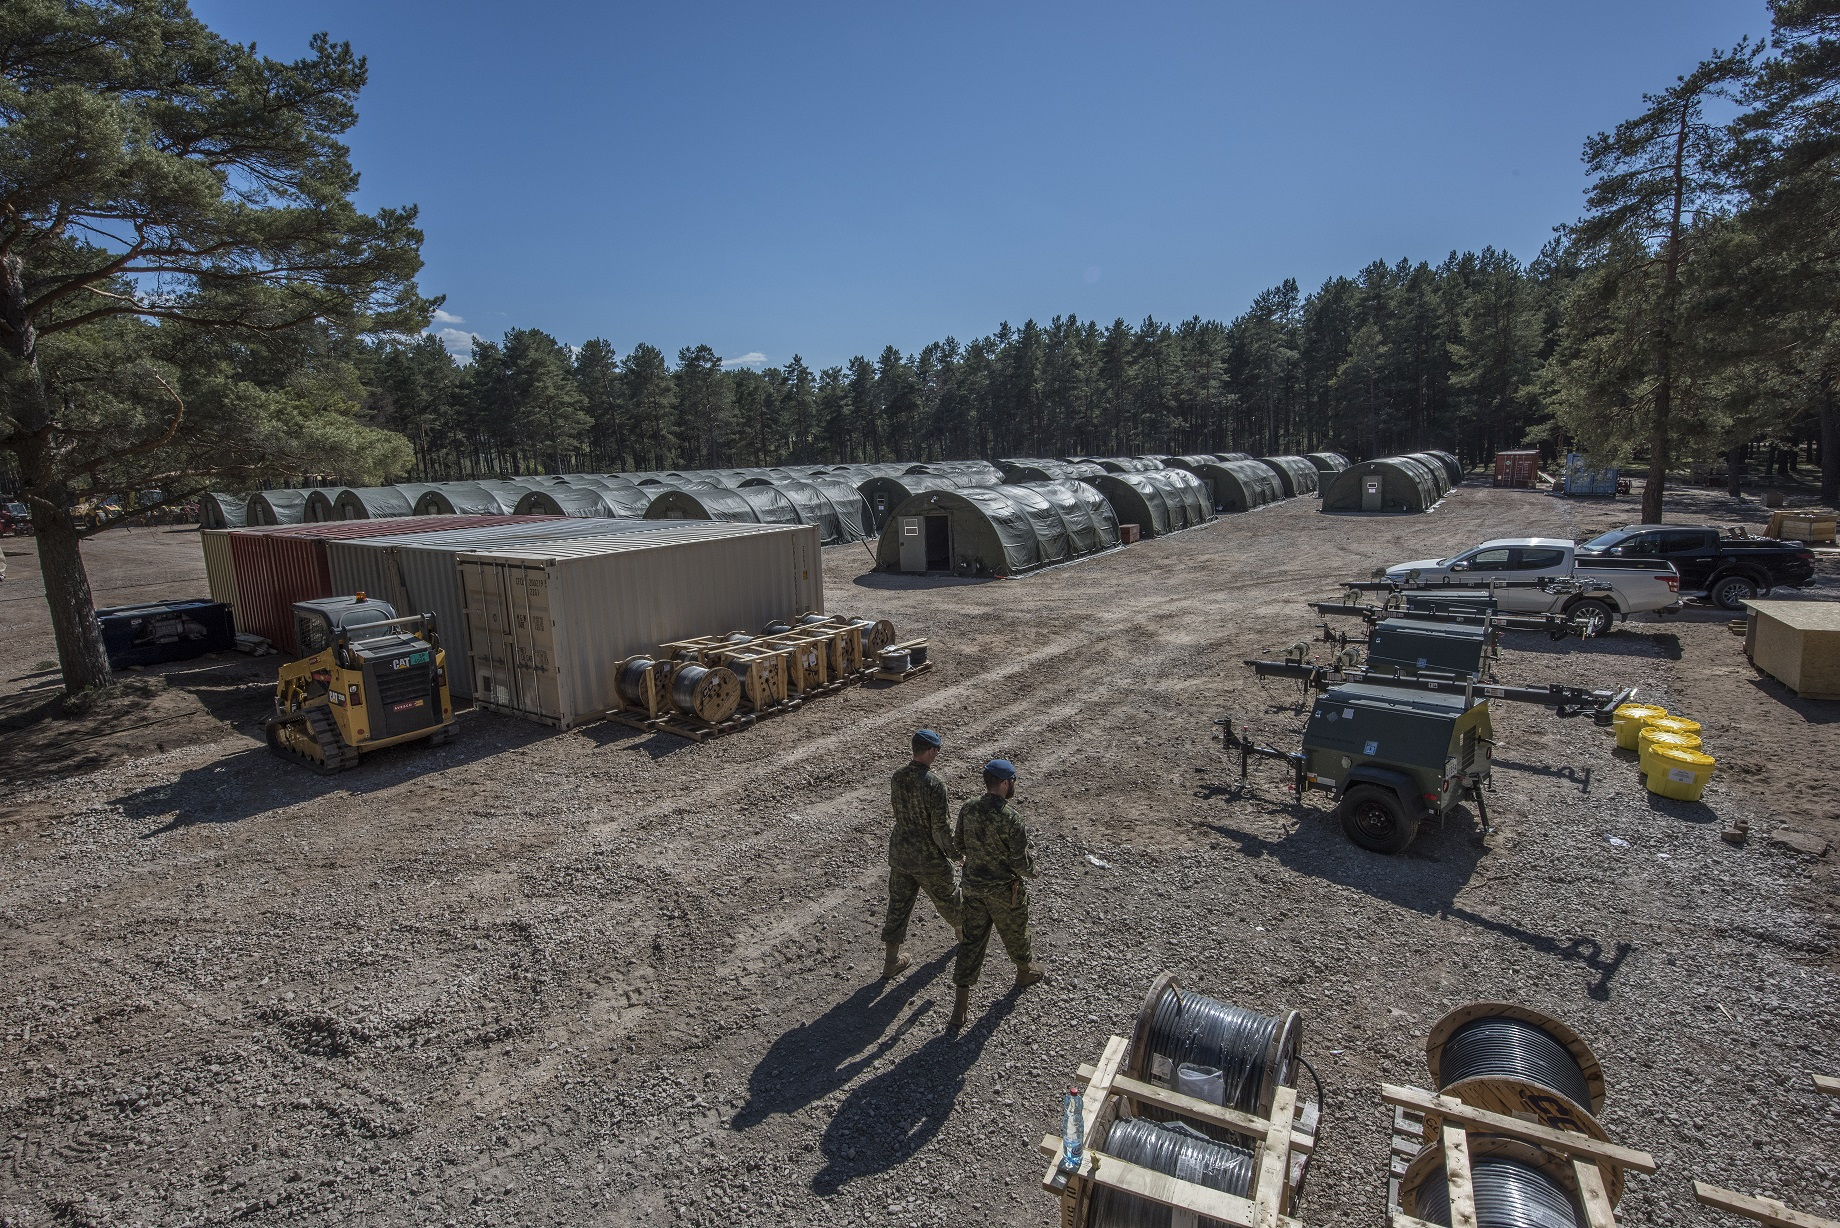 May 13, 2017. Canadian troops from the Theatre Opening Team prepare infrastructure at Camp Adazi, Latvia, on May 13, 2017, in advance of the arrival of NATO's enhanced Forward Presence multinational battlegroup in Latvia.